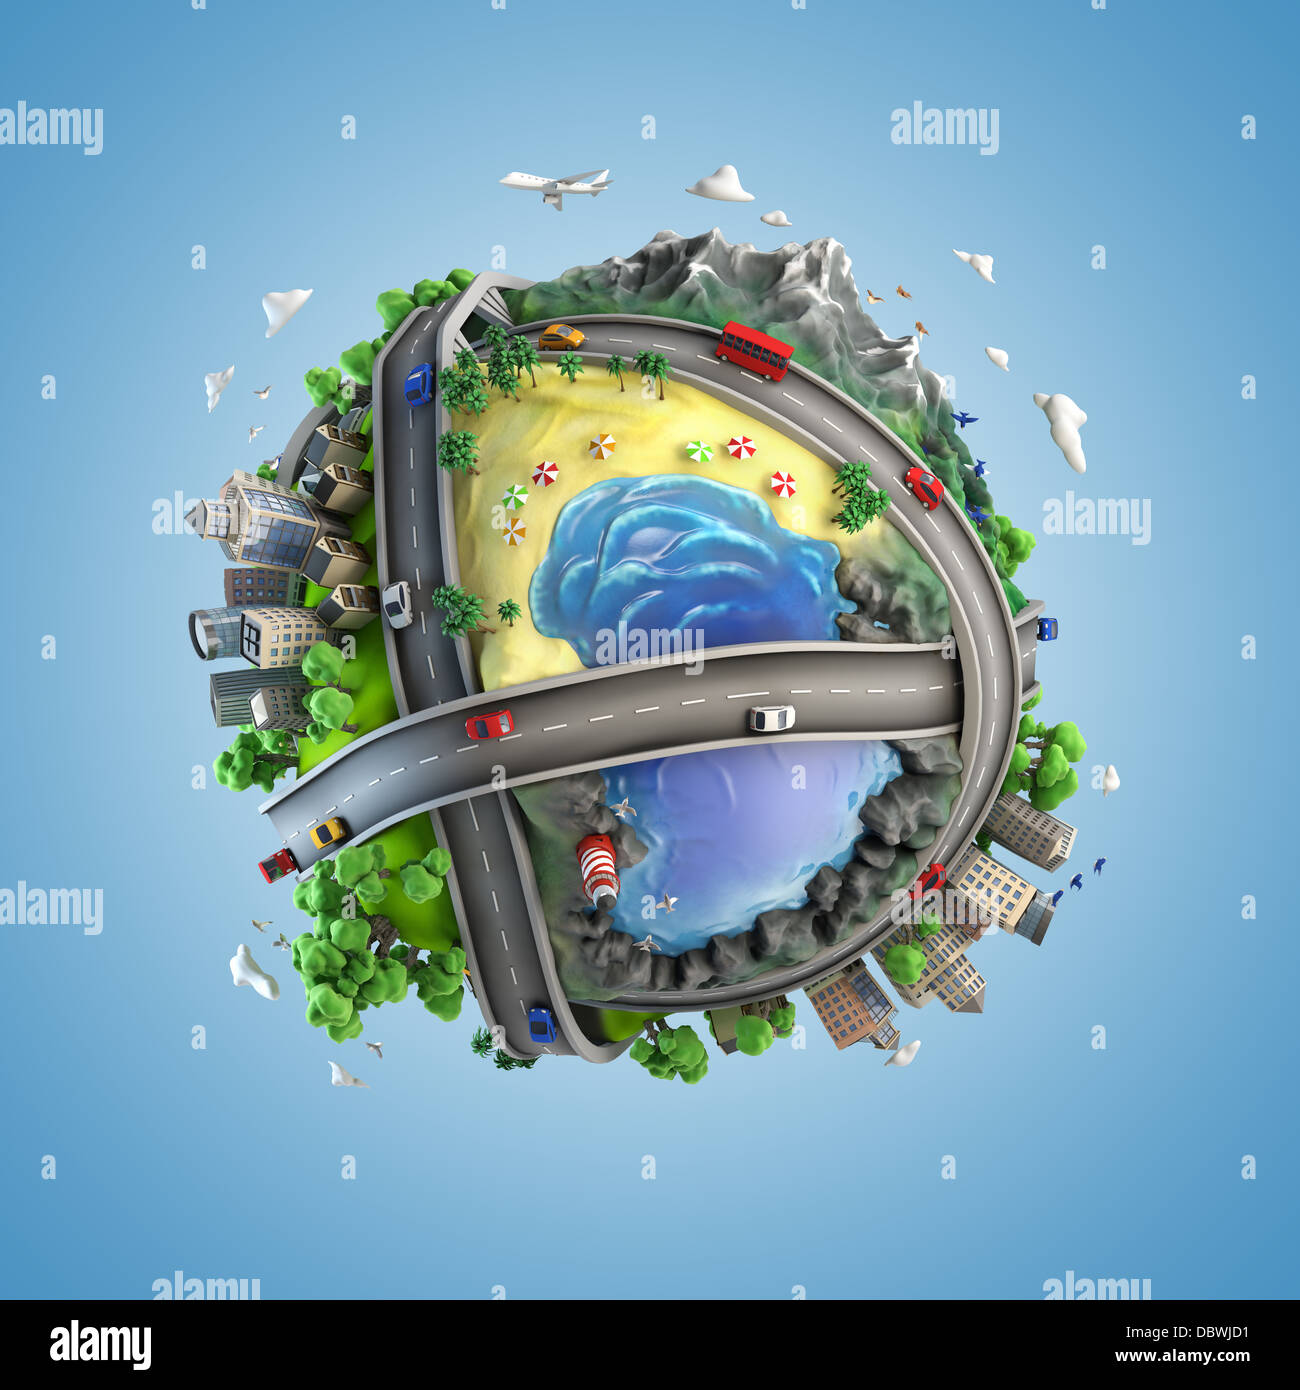 concept globe showing diversity and transport in the world in a cartoony style - Stock Image